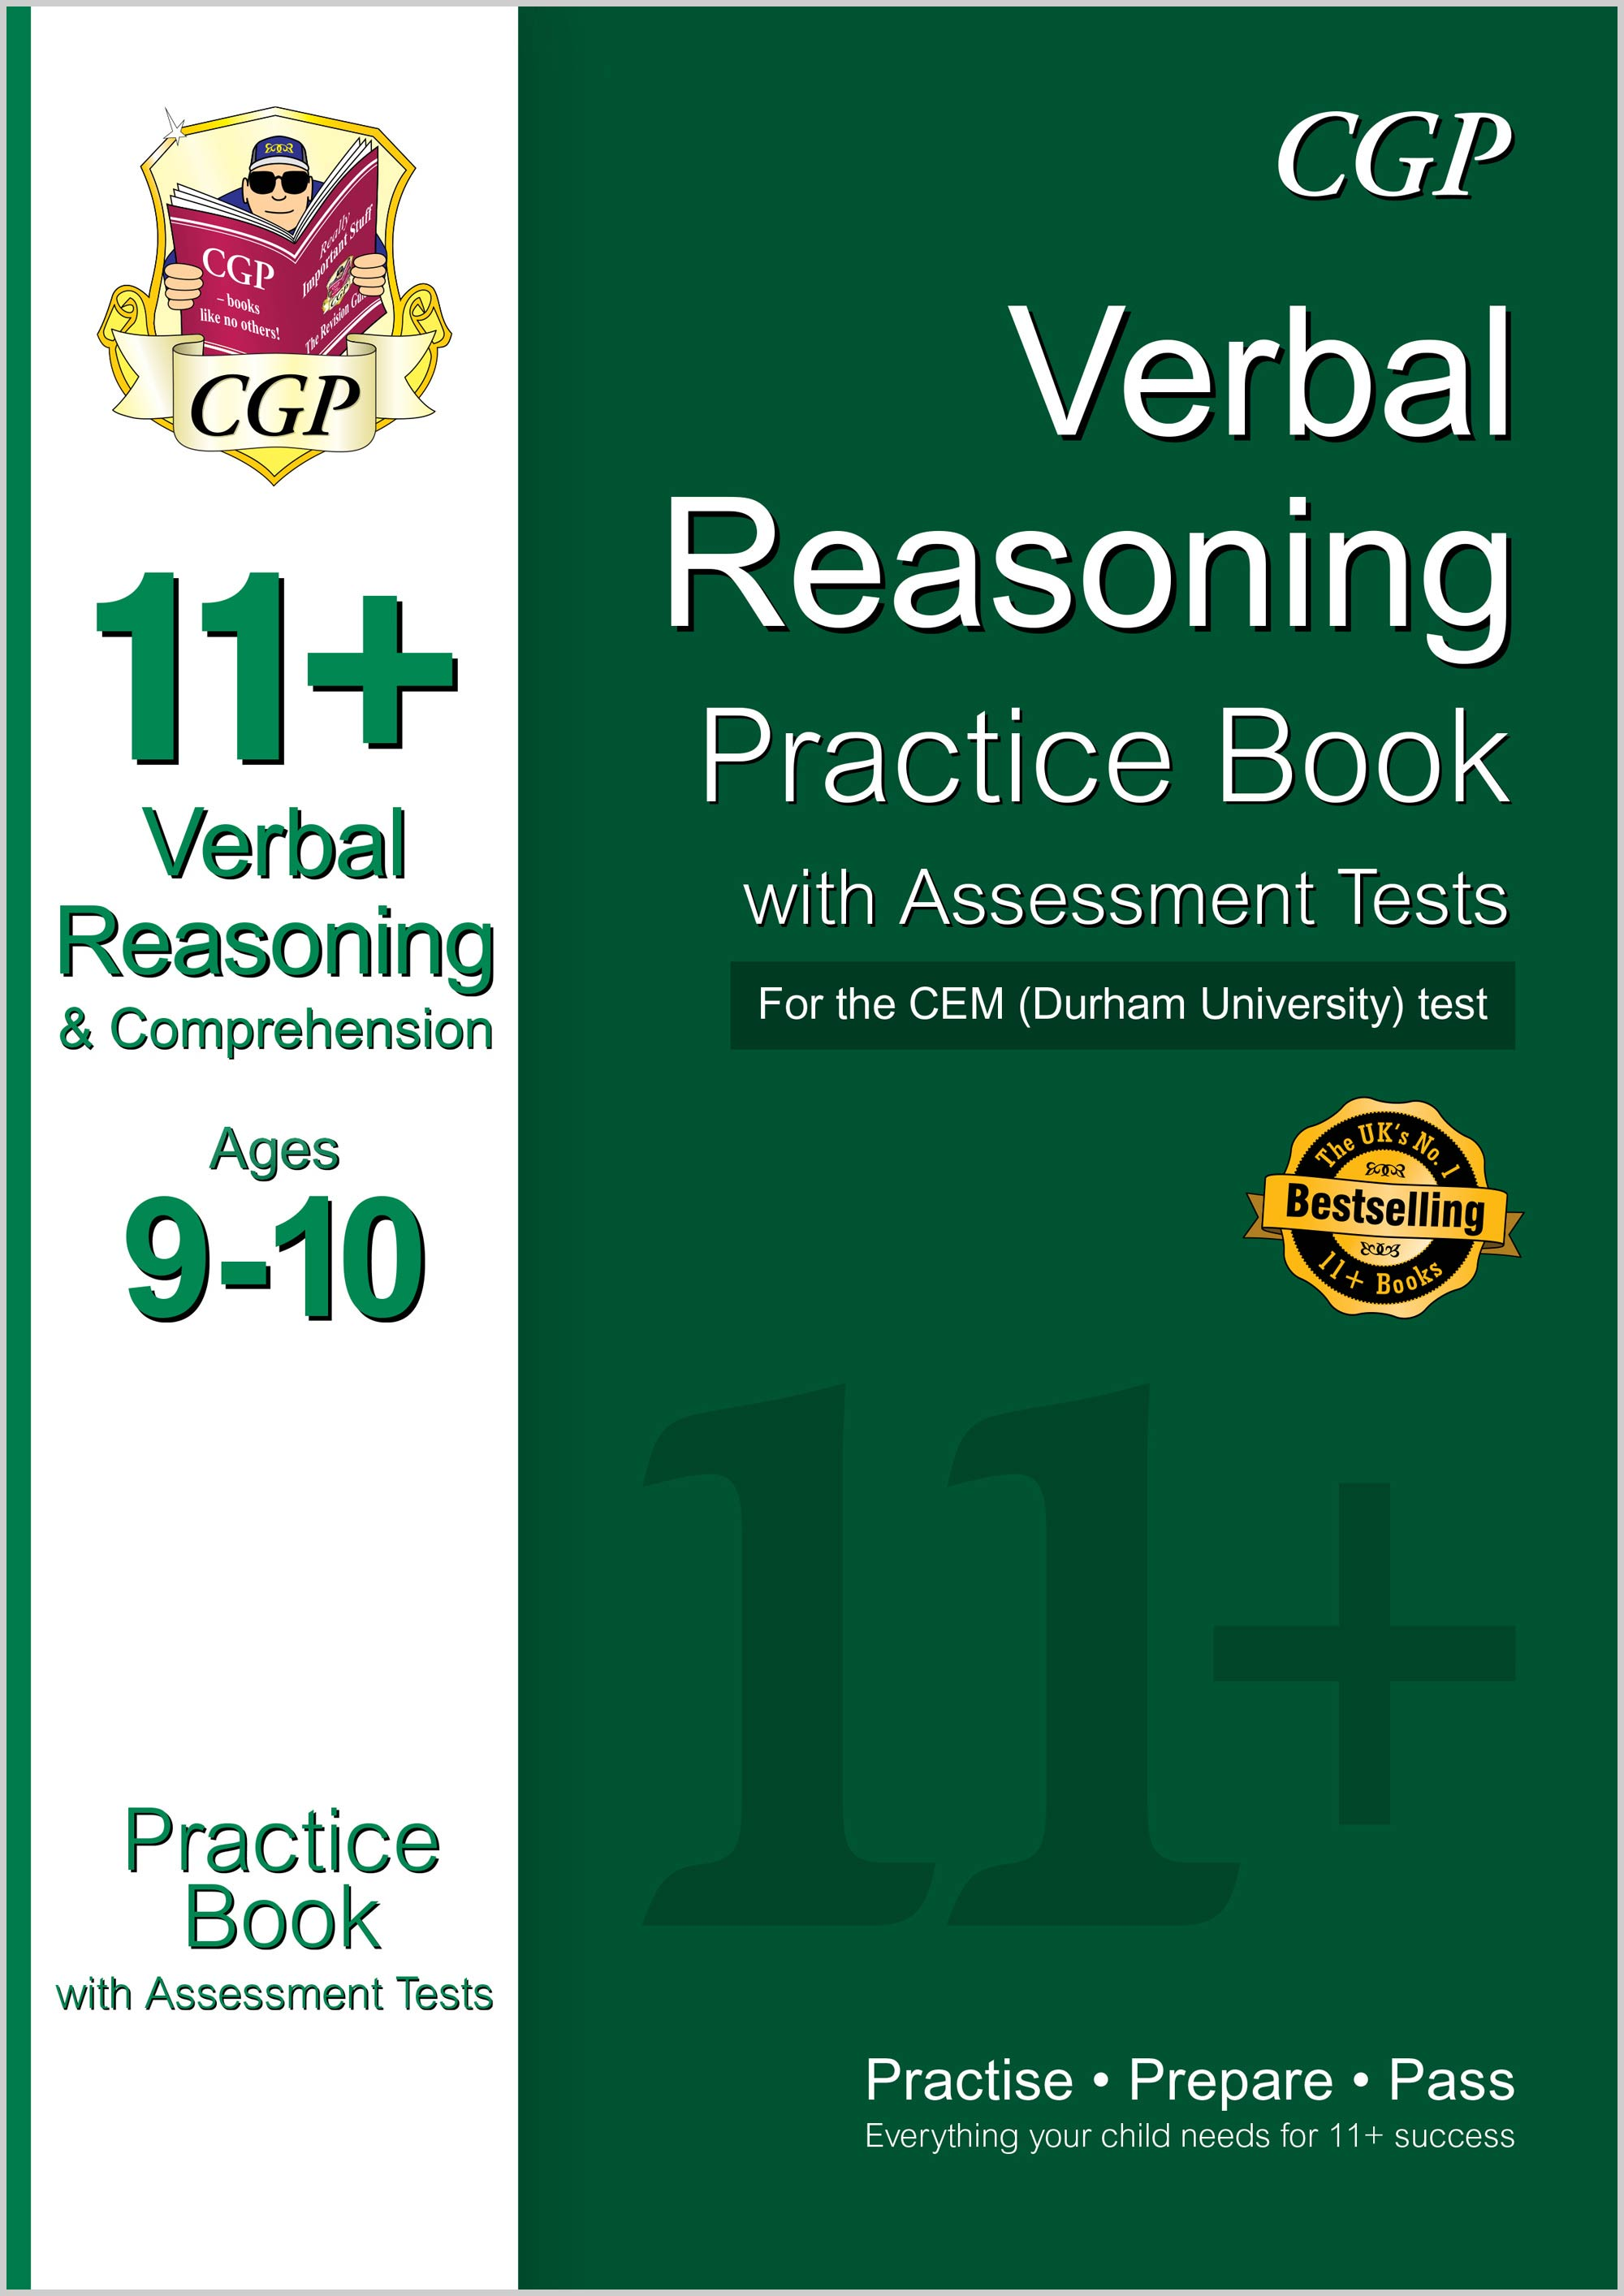 V5QDE1DK - 11+ Verbal Reasoning Practice Book with Assessment Tests (Ages 9-10) for the CEM Test